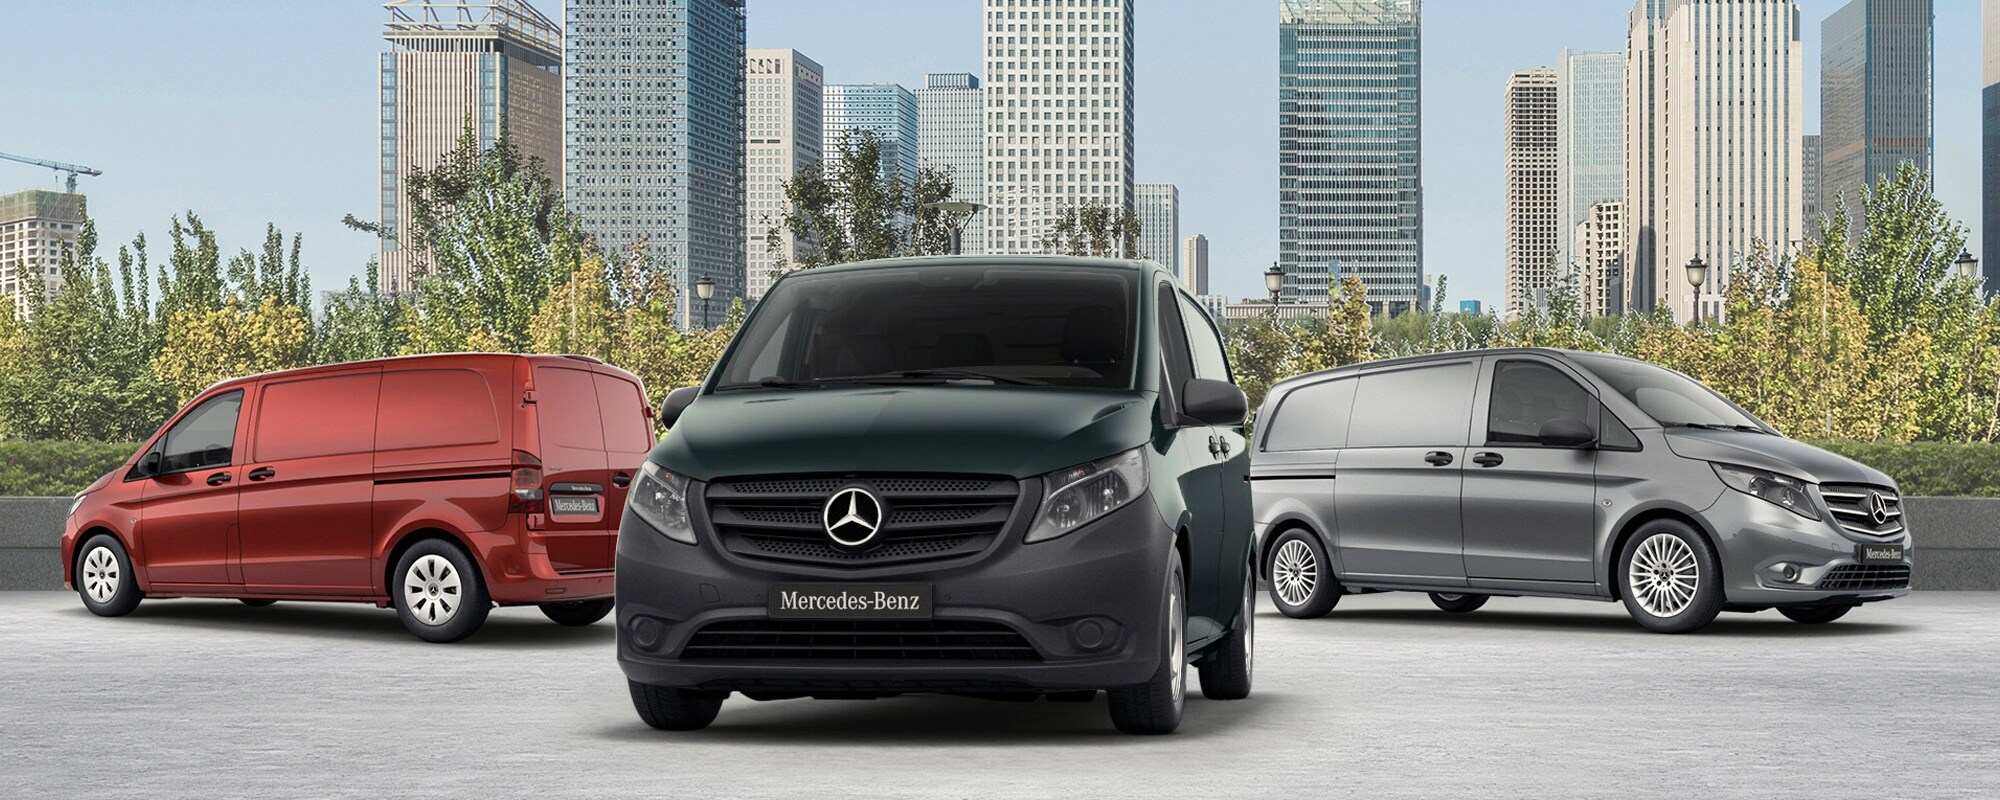 Mercedes-Benz Vans UK